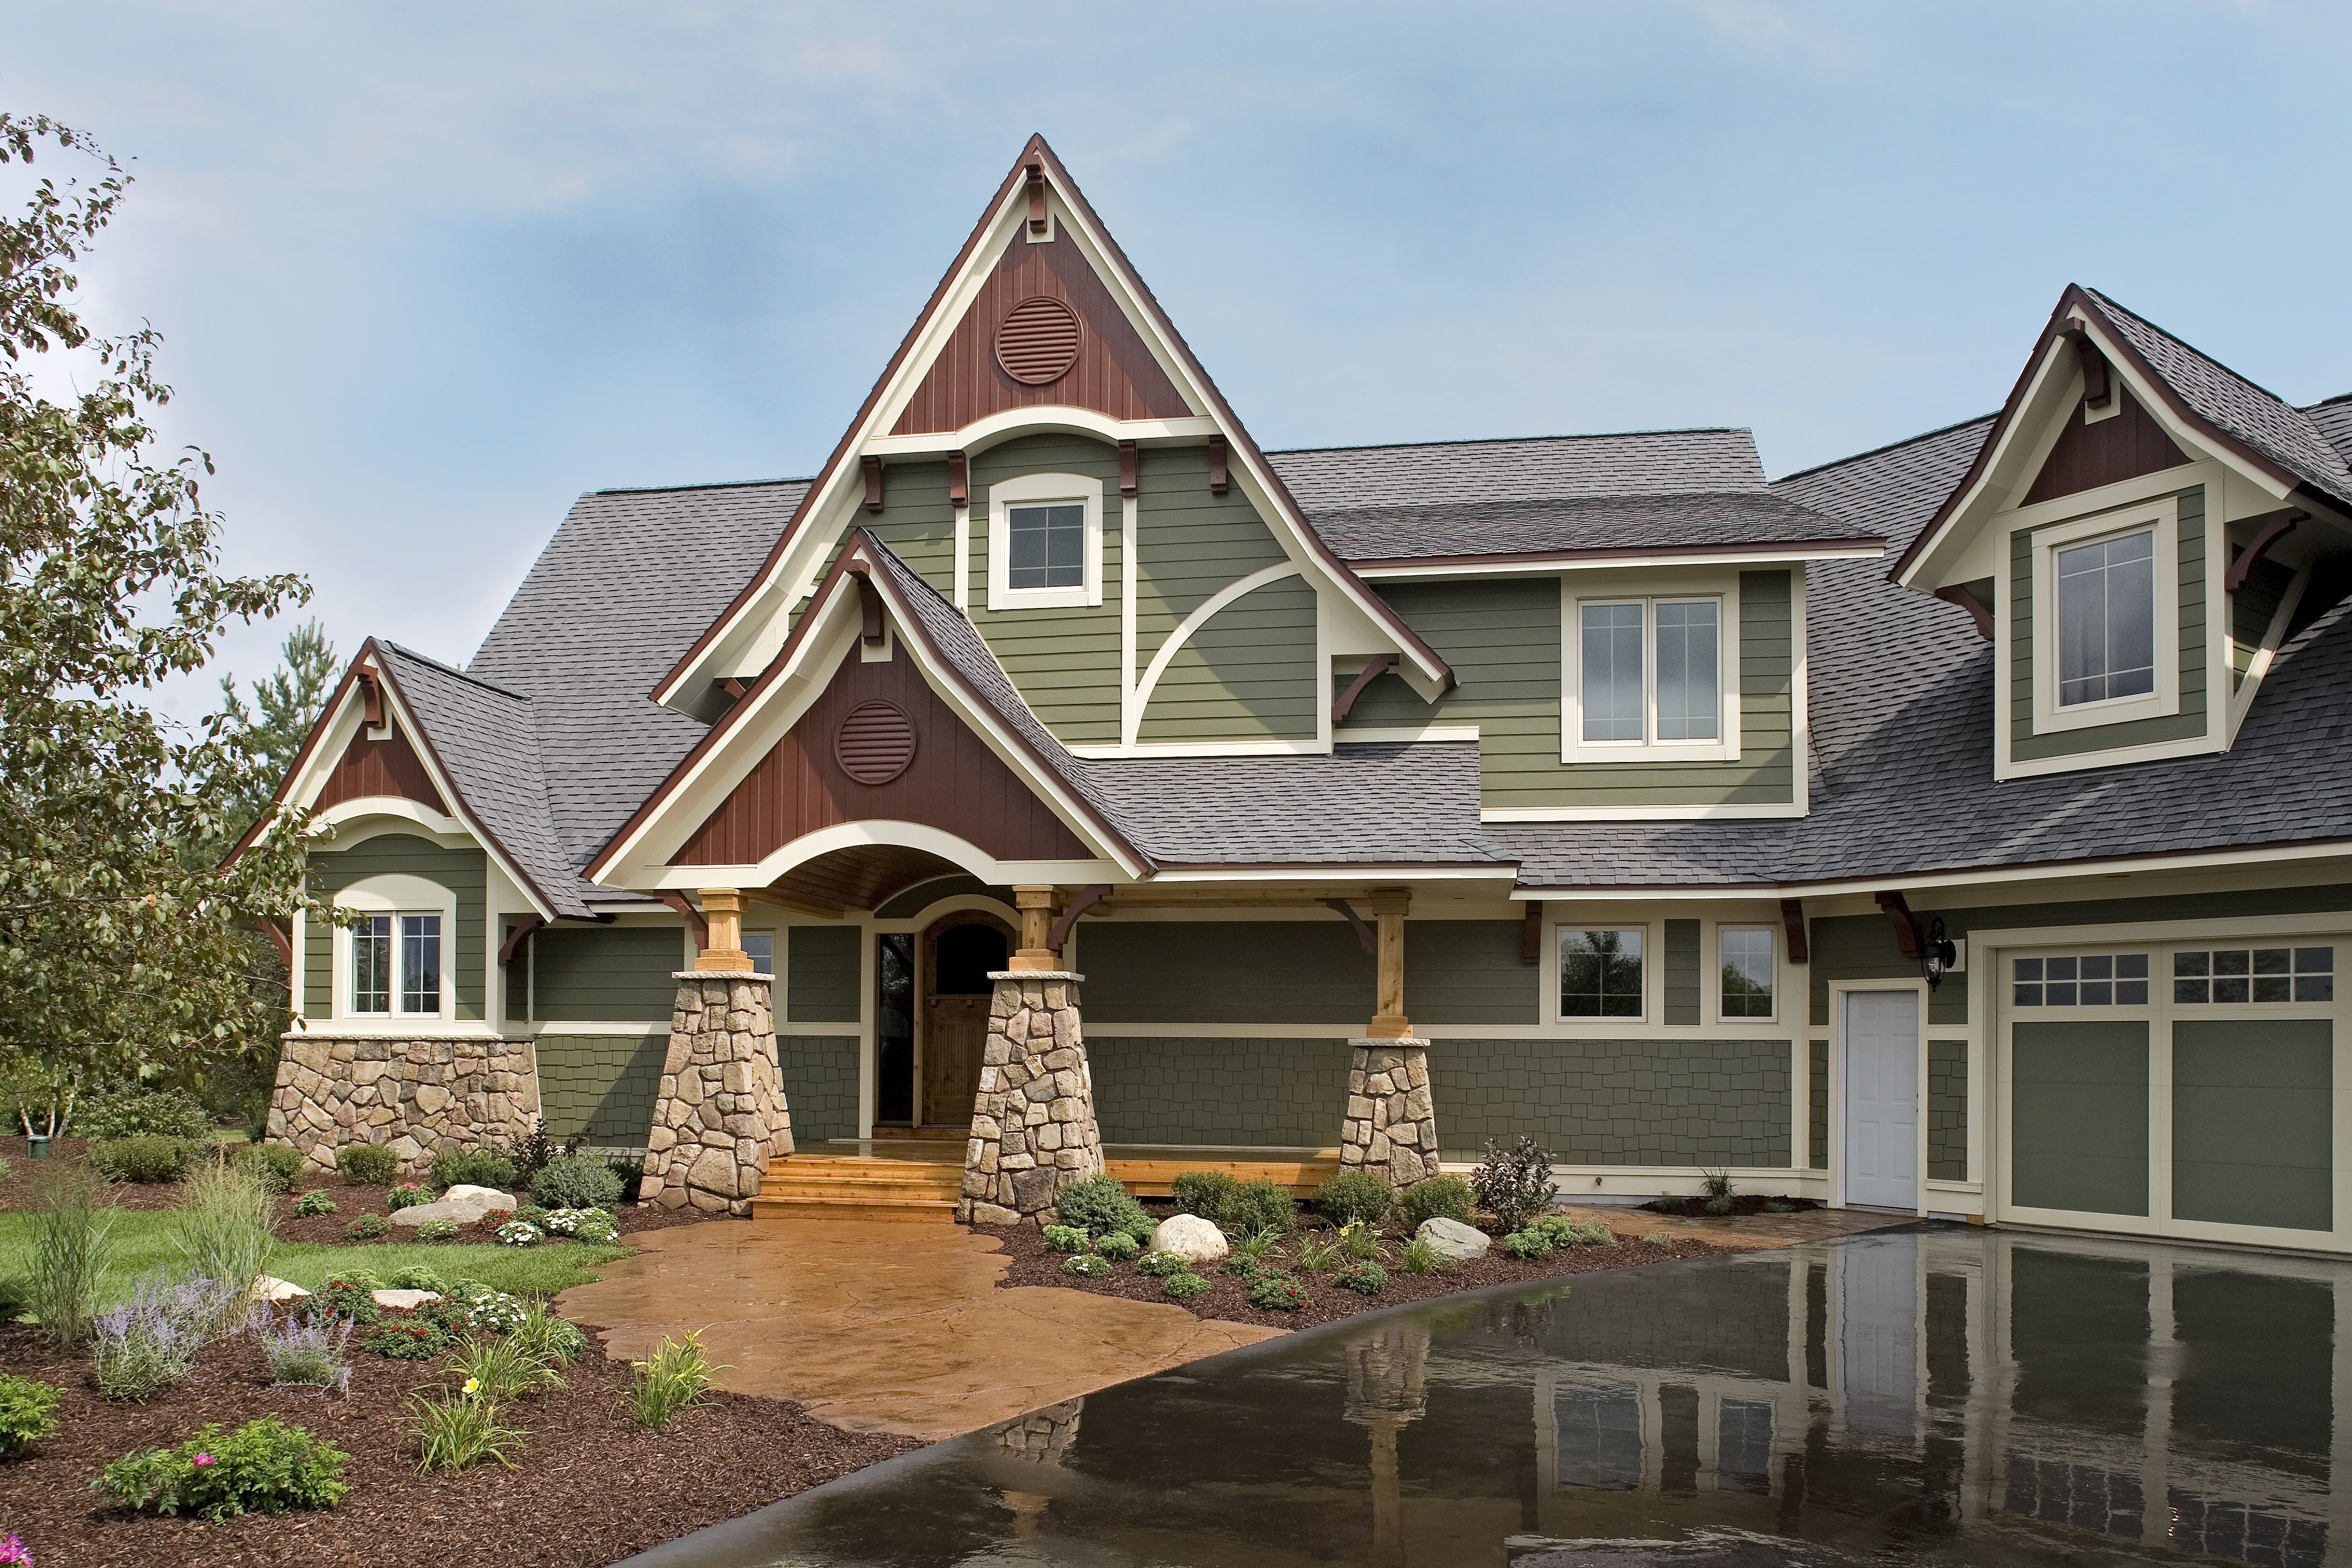 Twin Cities Siding Professionals Hardie Panel Minneapolis And St Paul House Siding Installation House Siding Hardie Siding